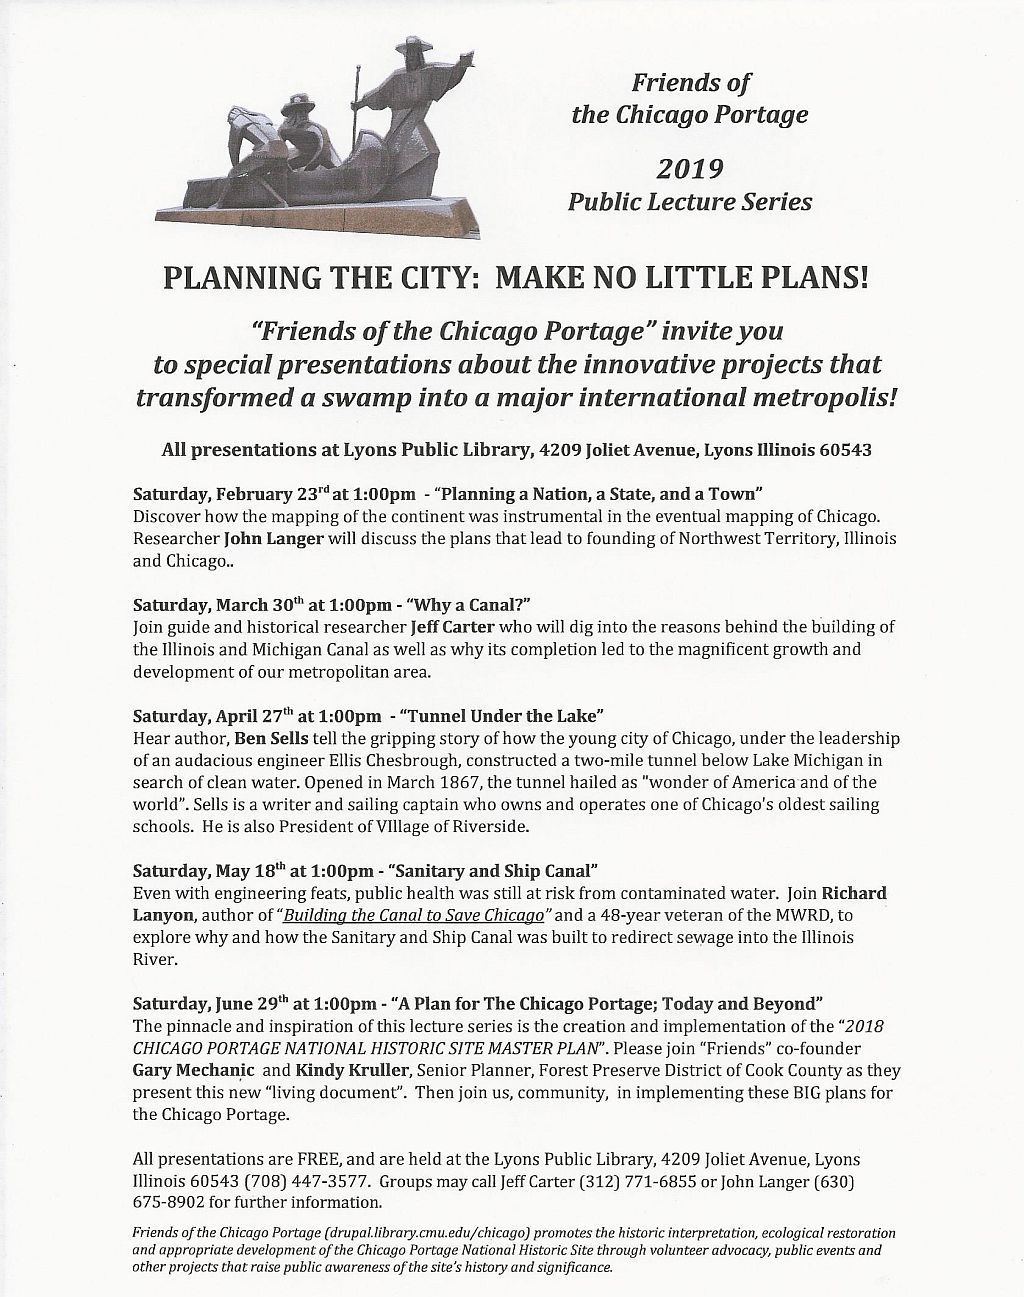 2019 Friends of the Chicago Portage Lecture Series poster